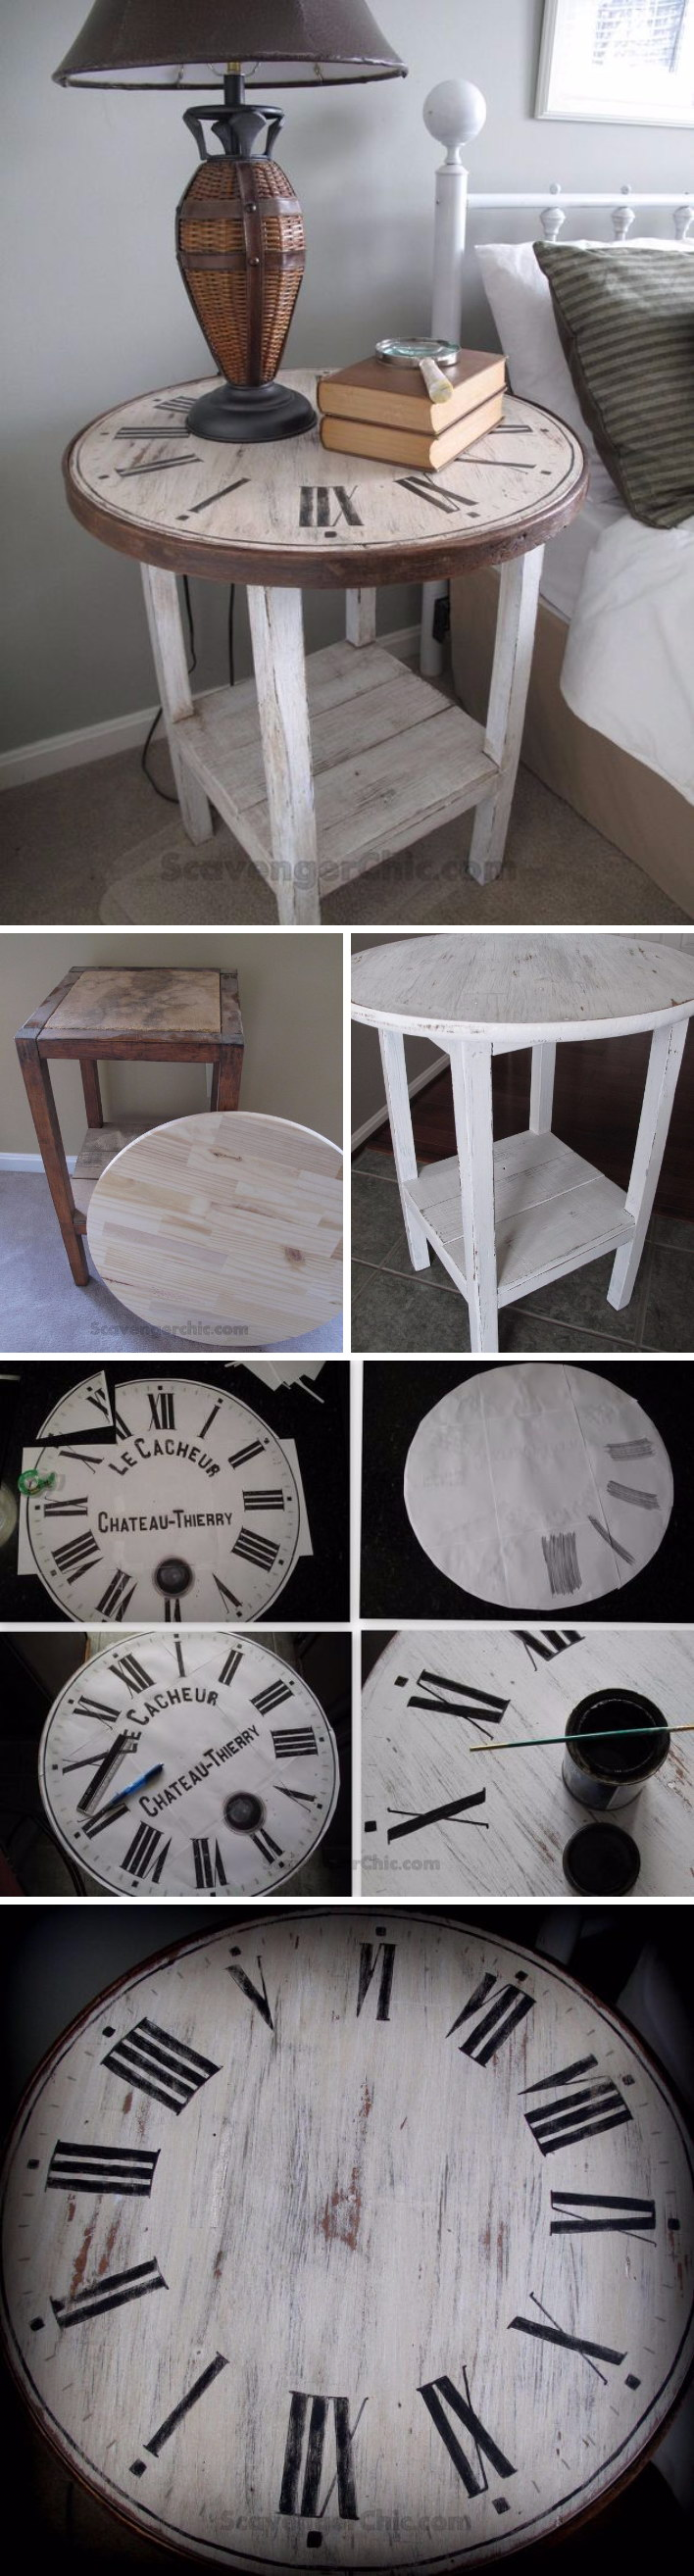 1-5-diy-side-table-ideas